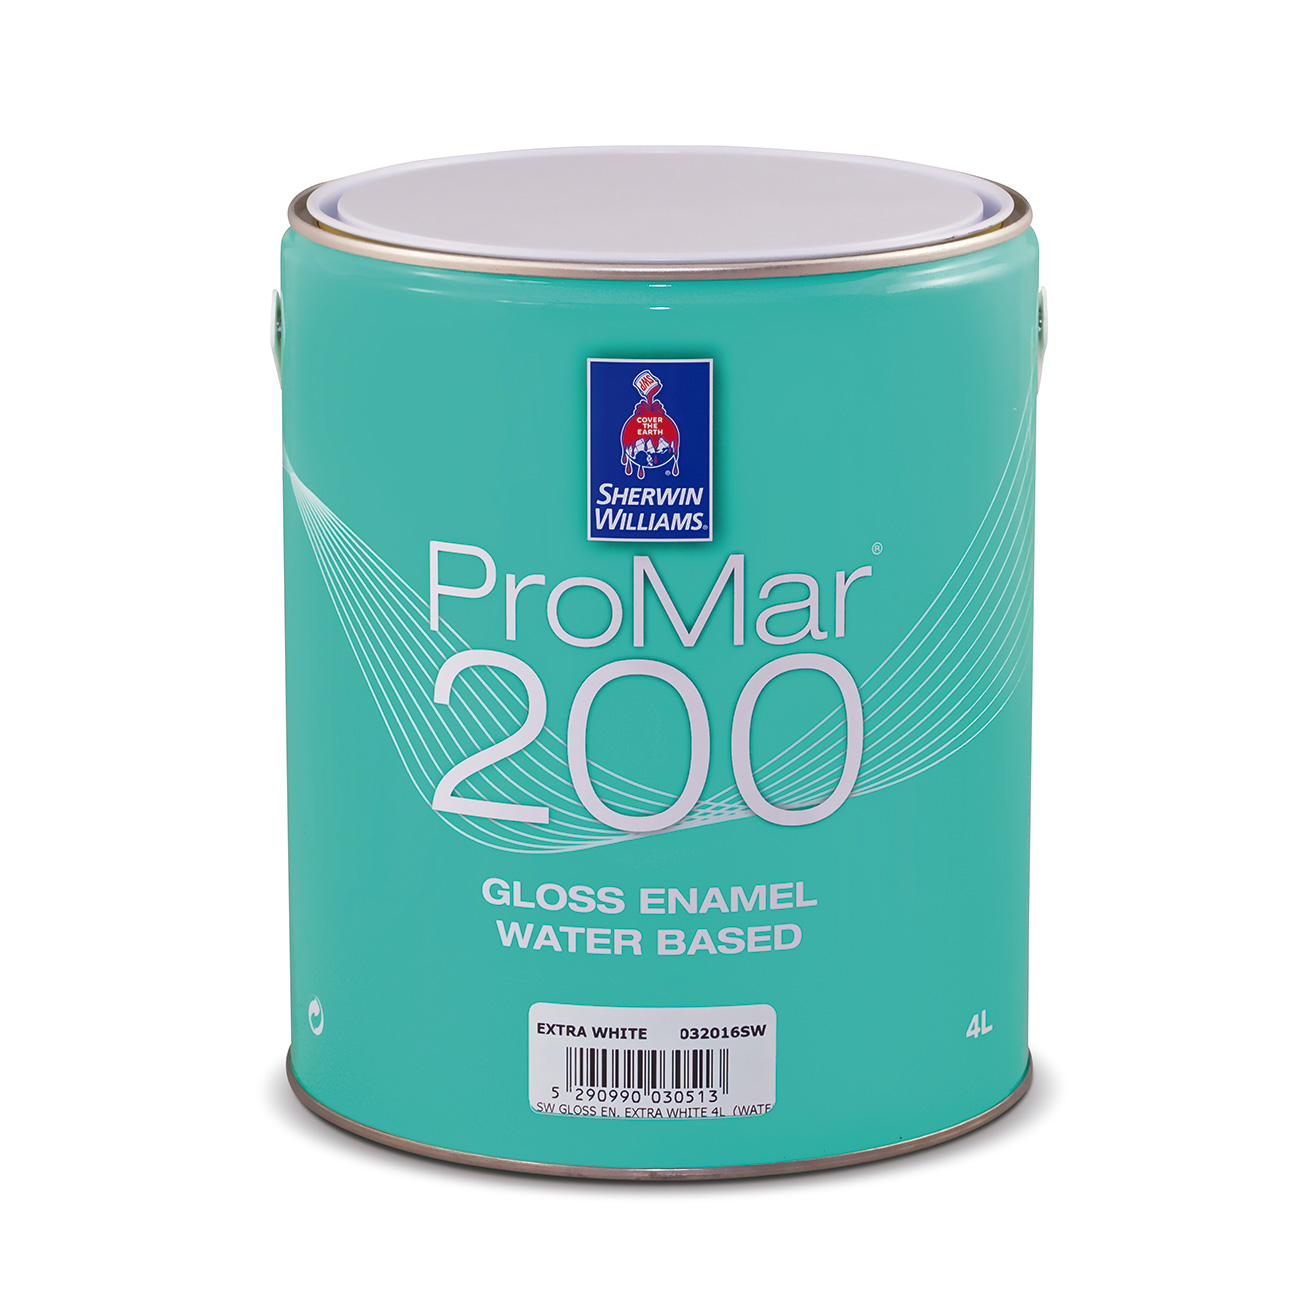 SHERWIN-WILLIAMS® PROMAR® 200 GLOSS ENAMEL WATER BASED SUPERWHITE 4L